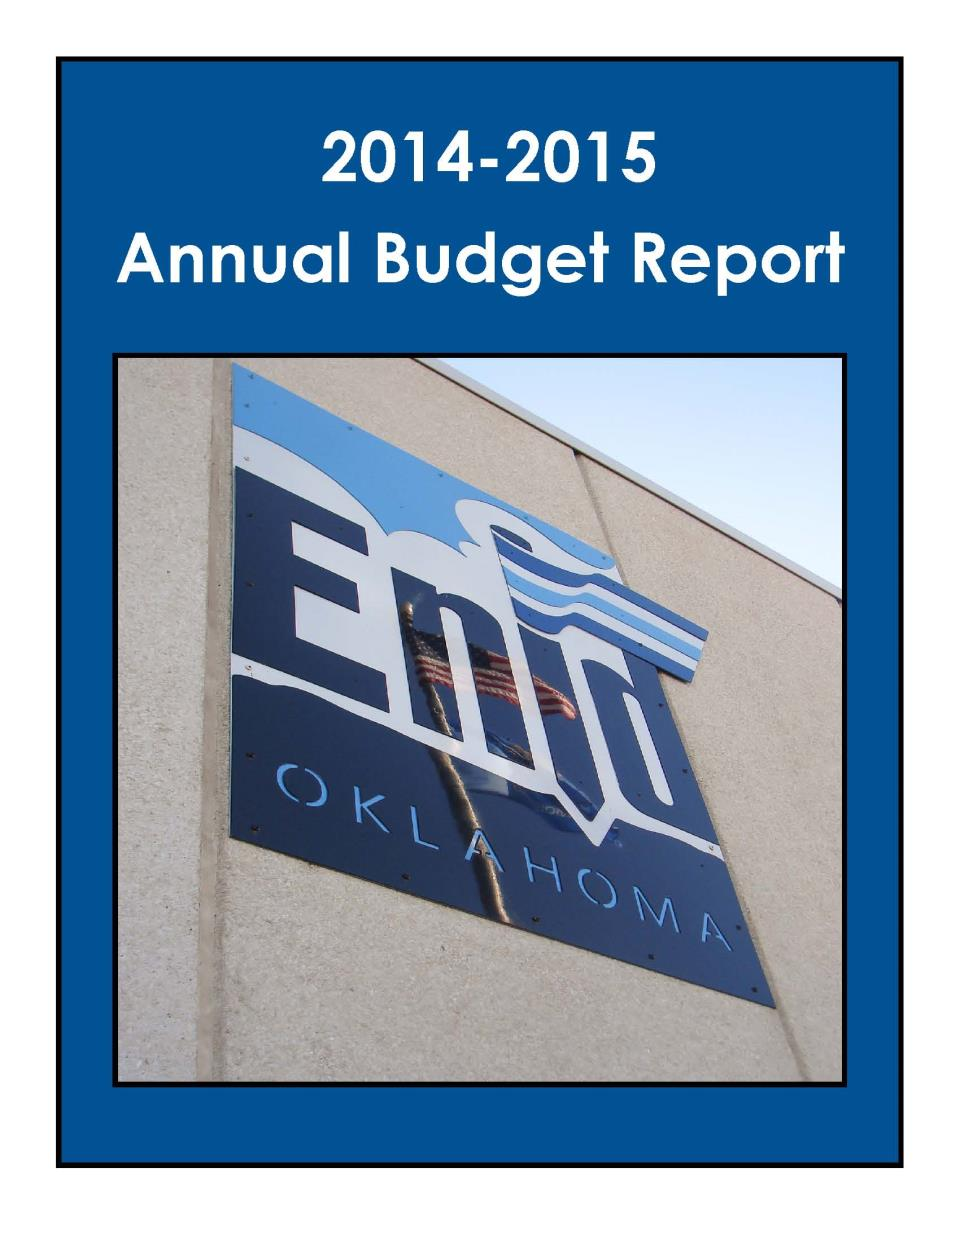 2014-2015 Budget Cover